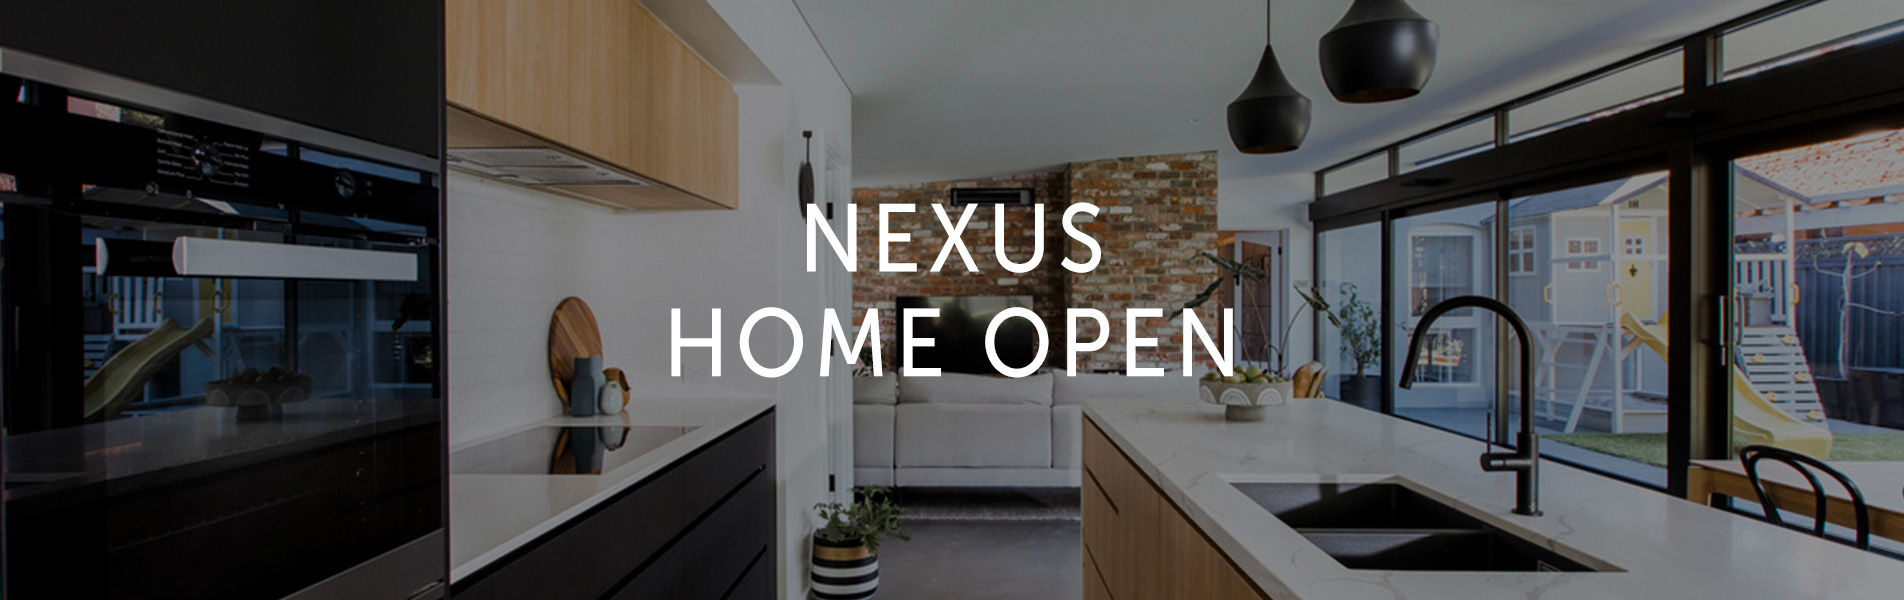 Nexus Home Open - Ground Floor Addition